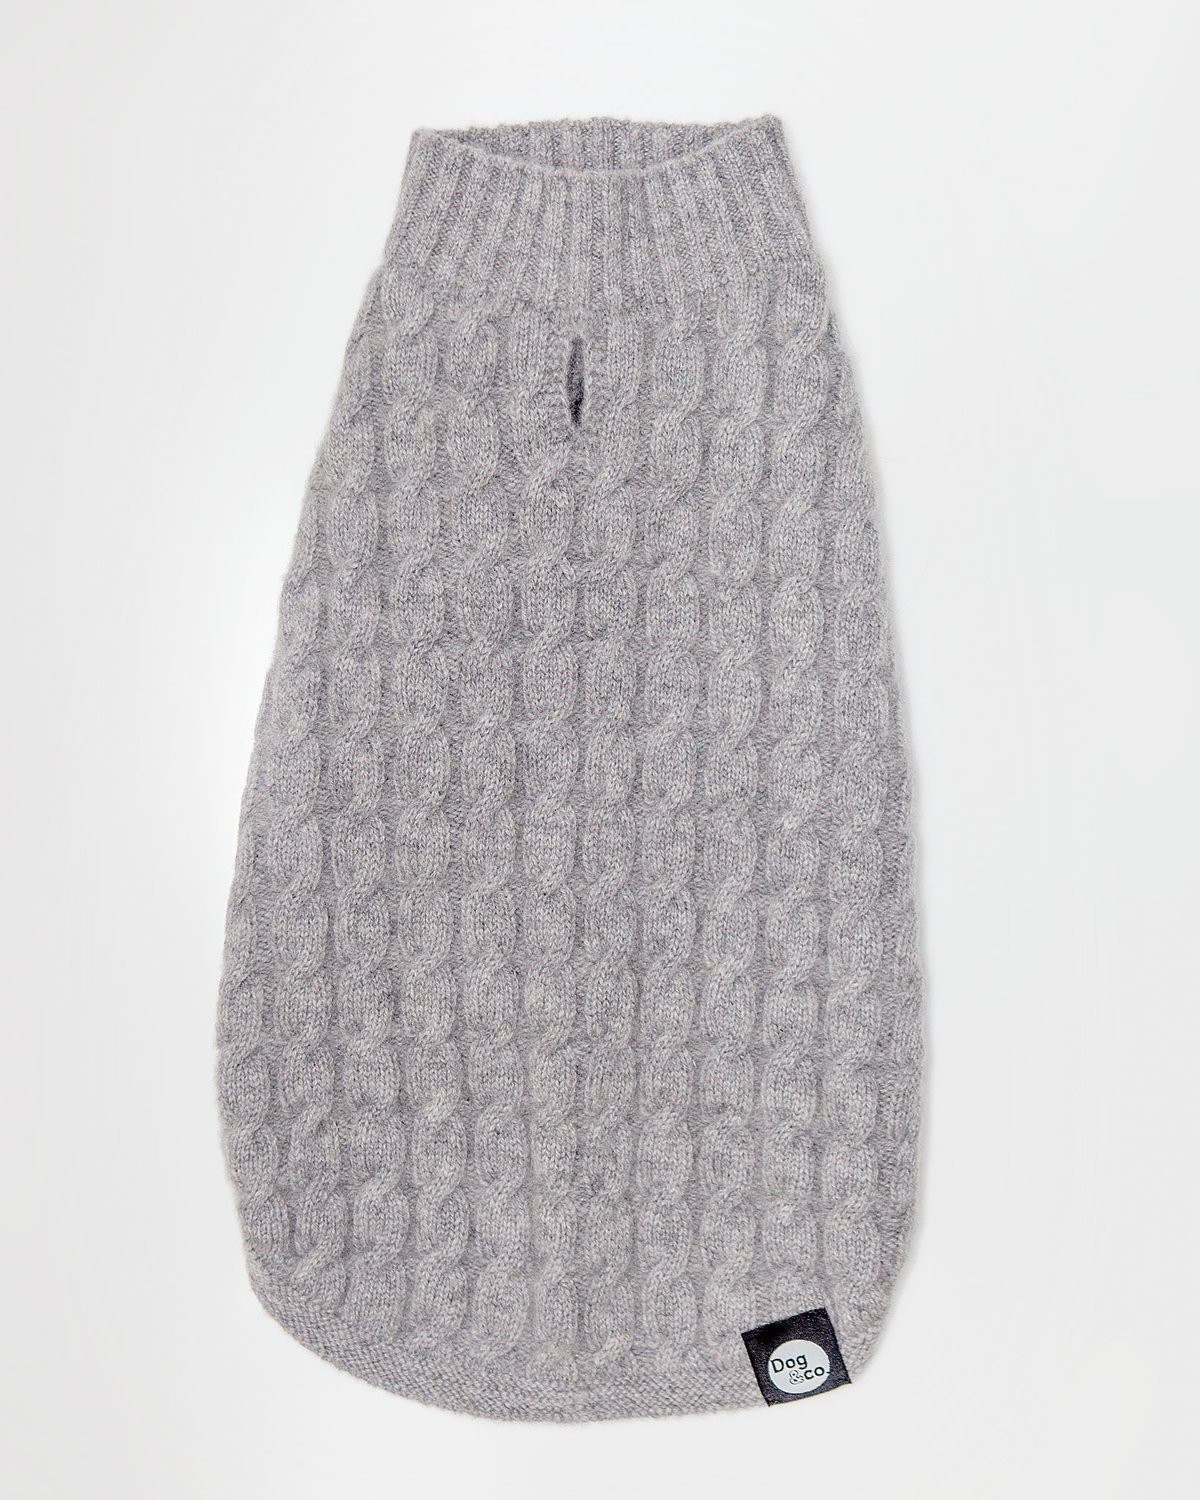 Soft Cashmere Cable Knit in Brume Grey